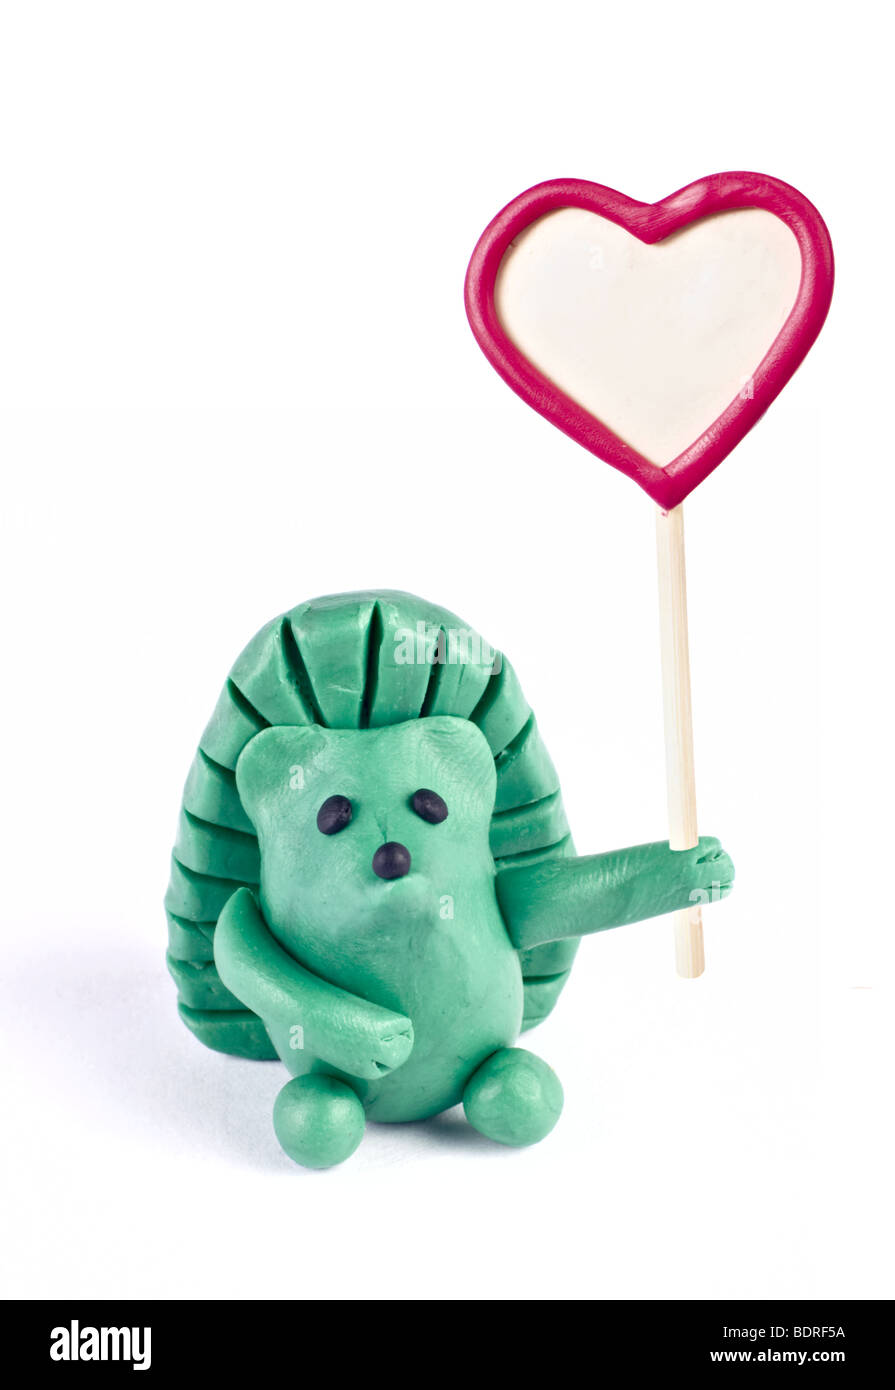 Plasticine hedgehog retaining heart-shaped banner Stock Photo